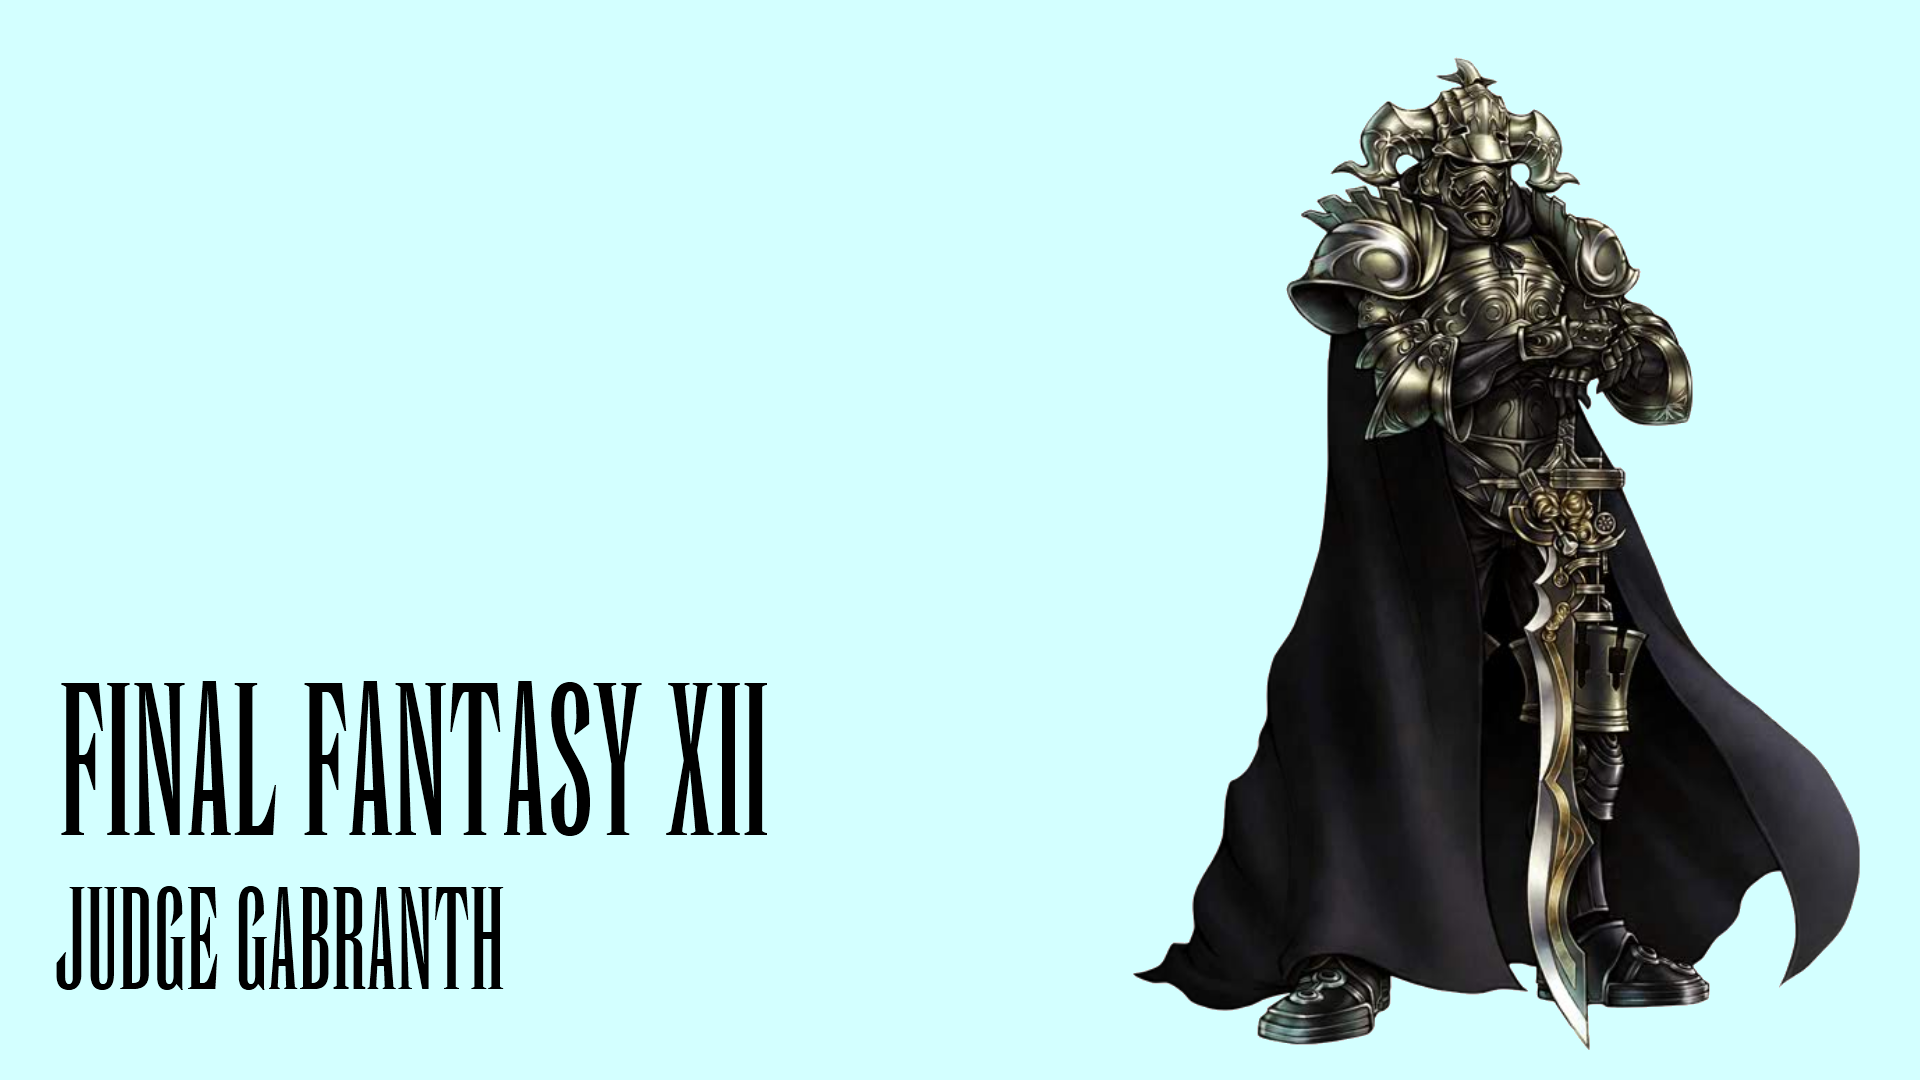 Final Fantasy 12 Wallpaper: Final Fantasy 12 Full HD Wallpaper And Background Image